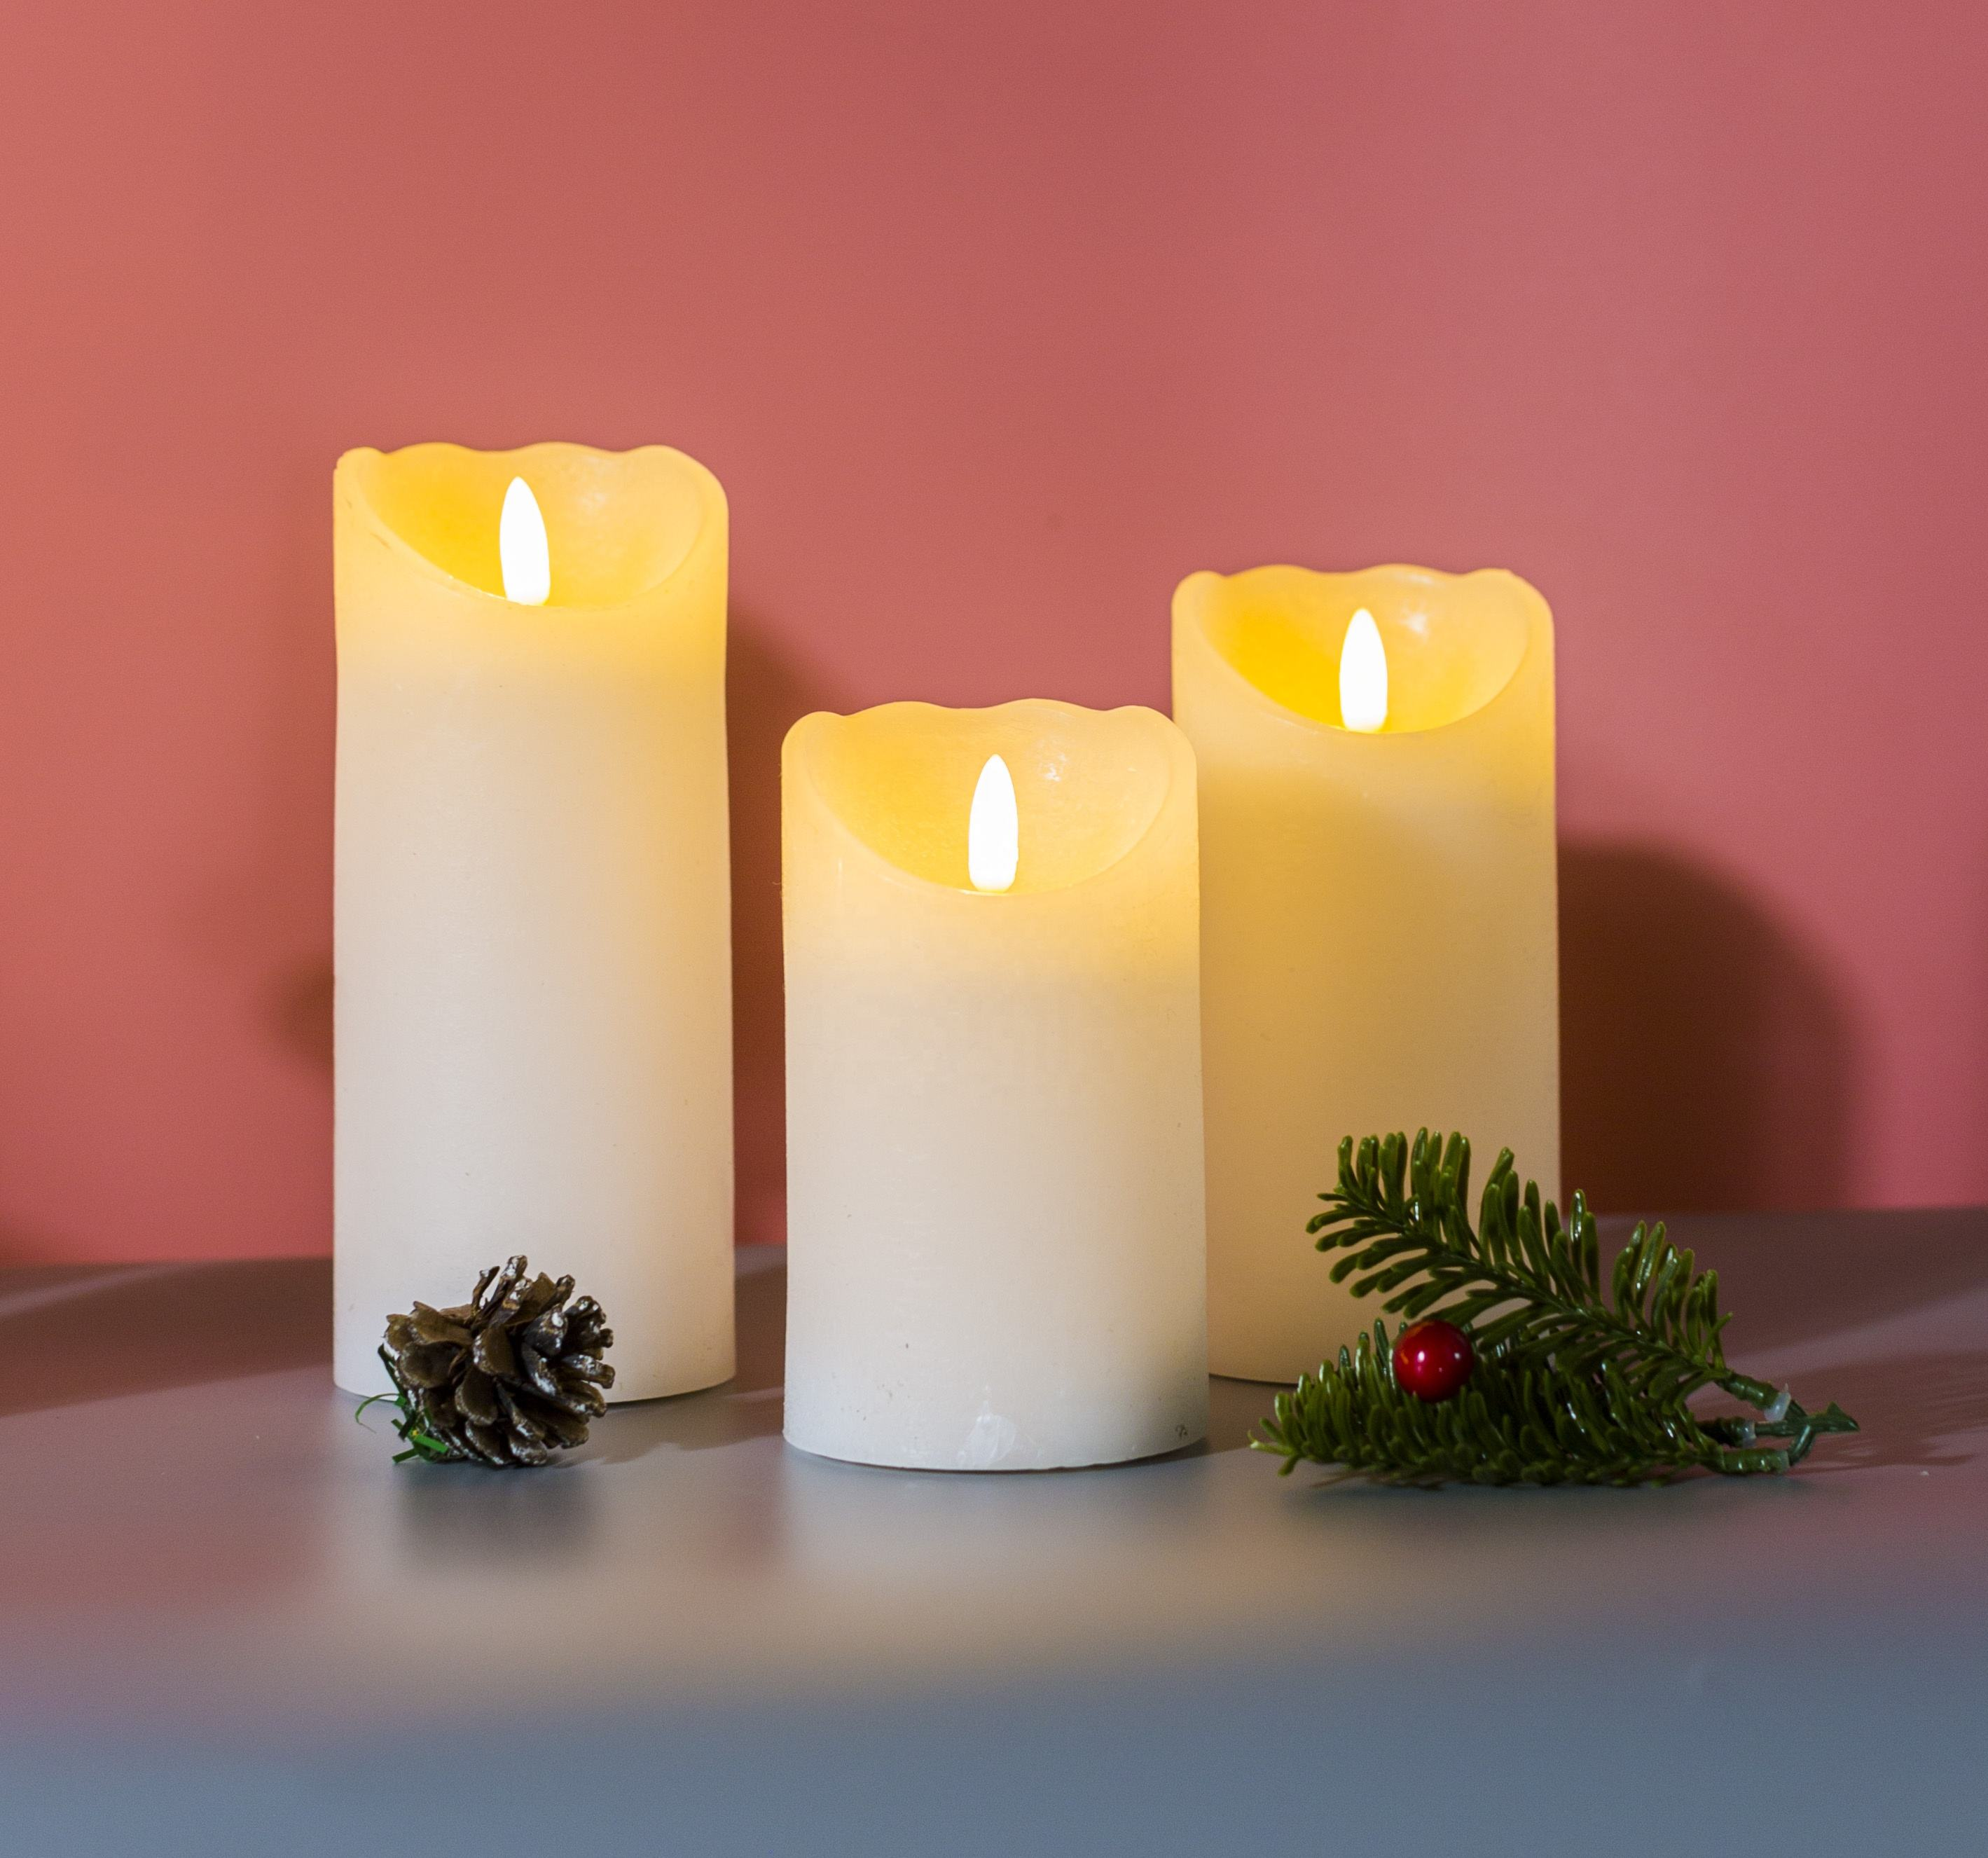 Newish 3pcs/set 3d battery operated real wax moving wick flickering flameless led candles electric candle home decoration